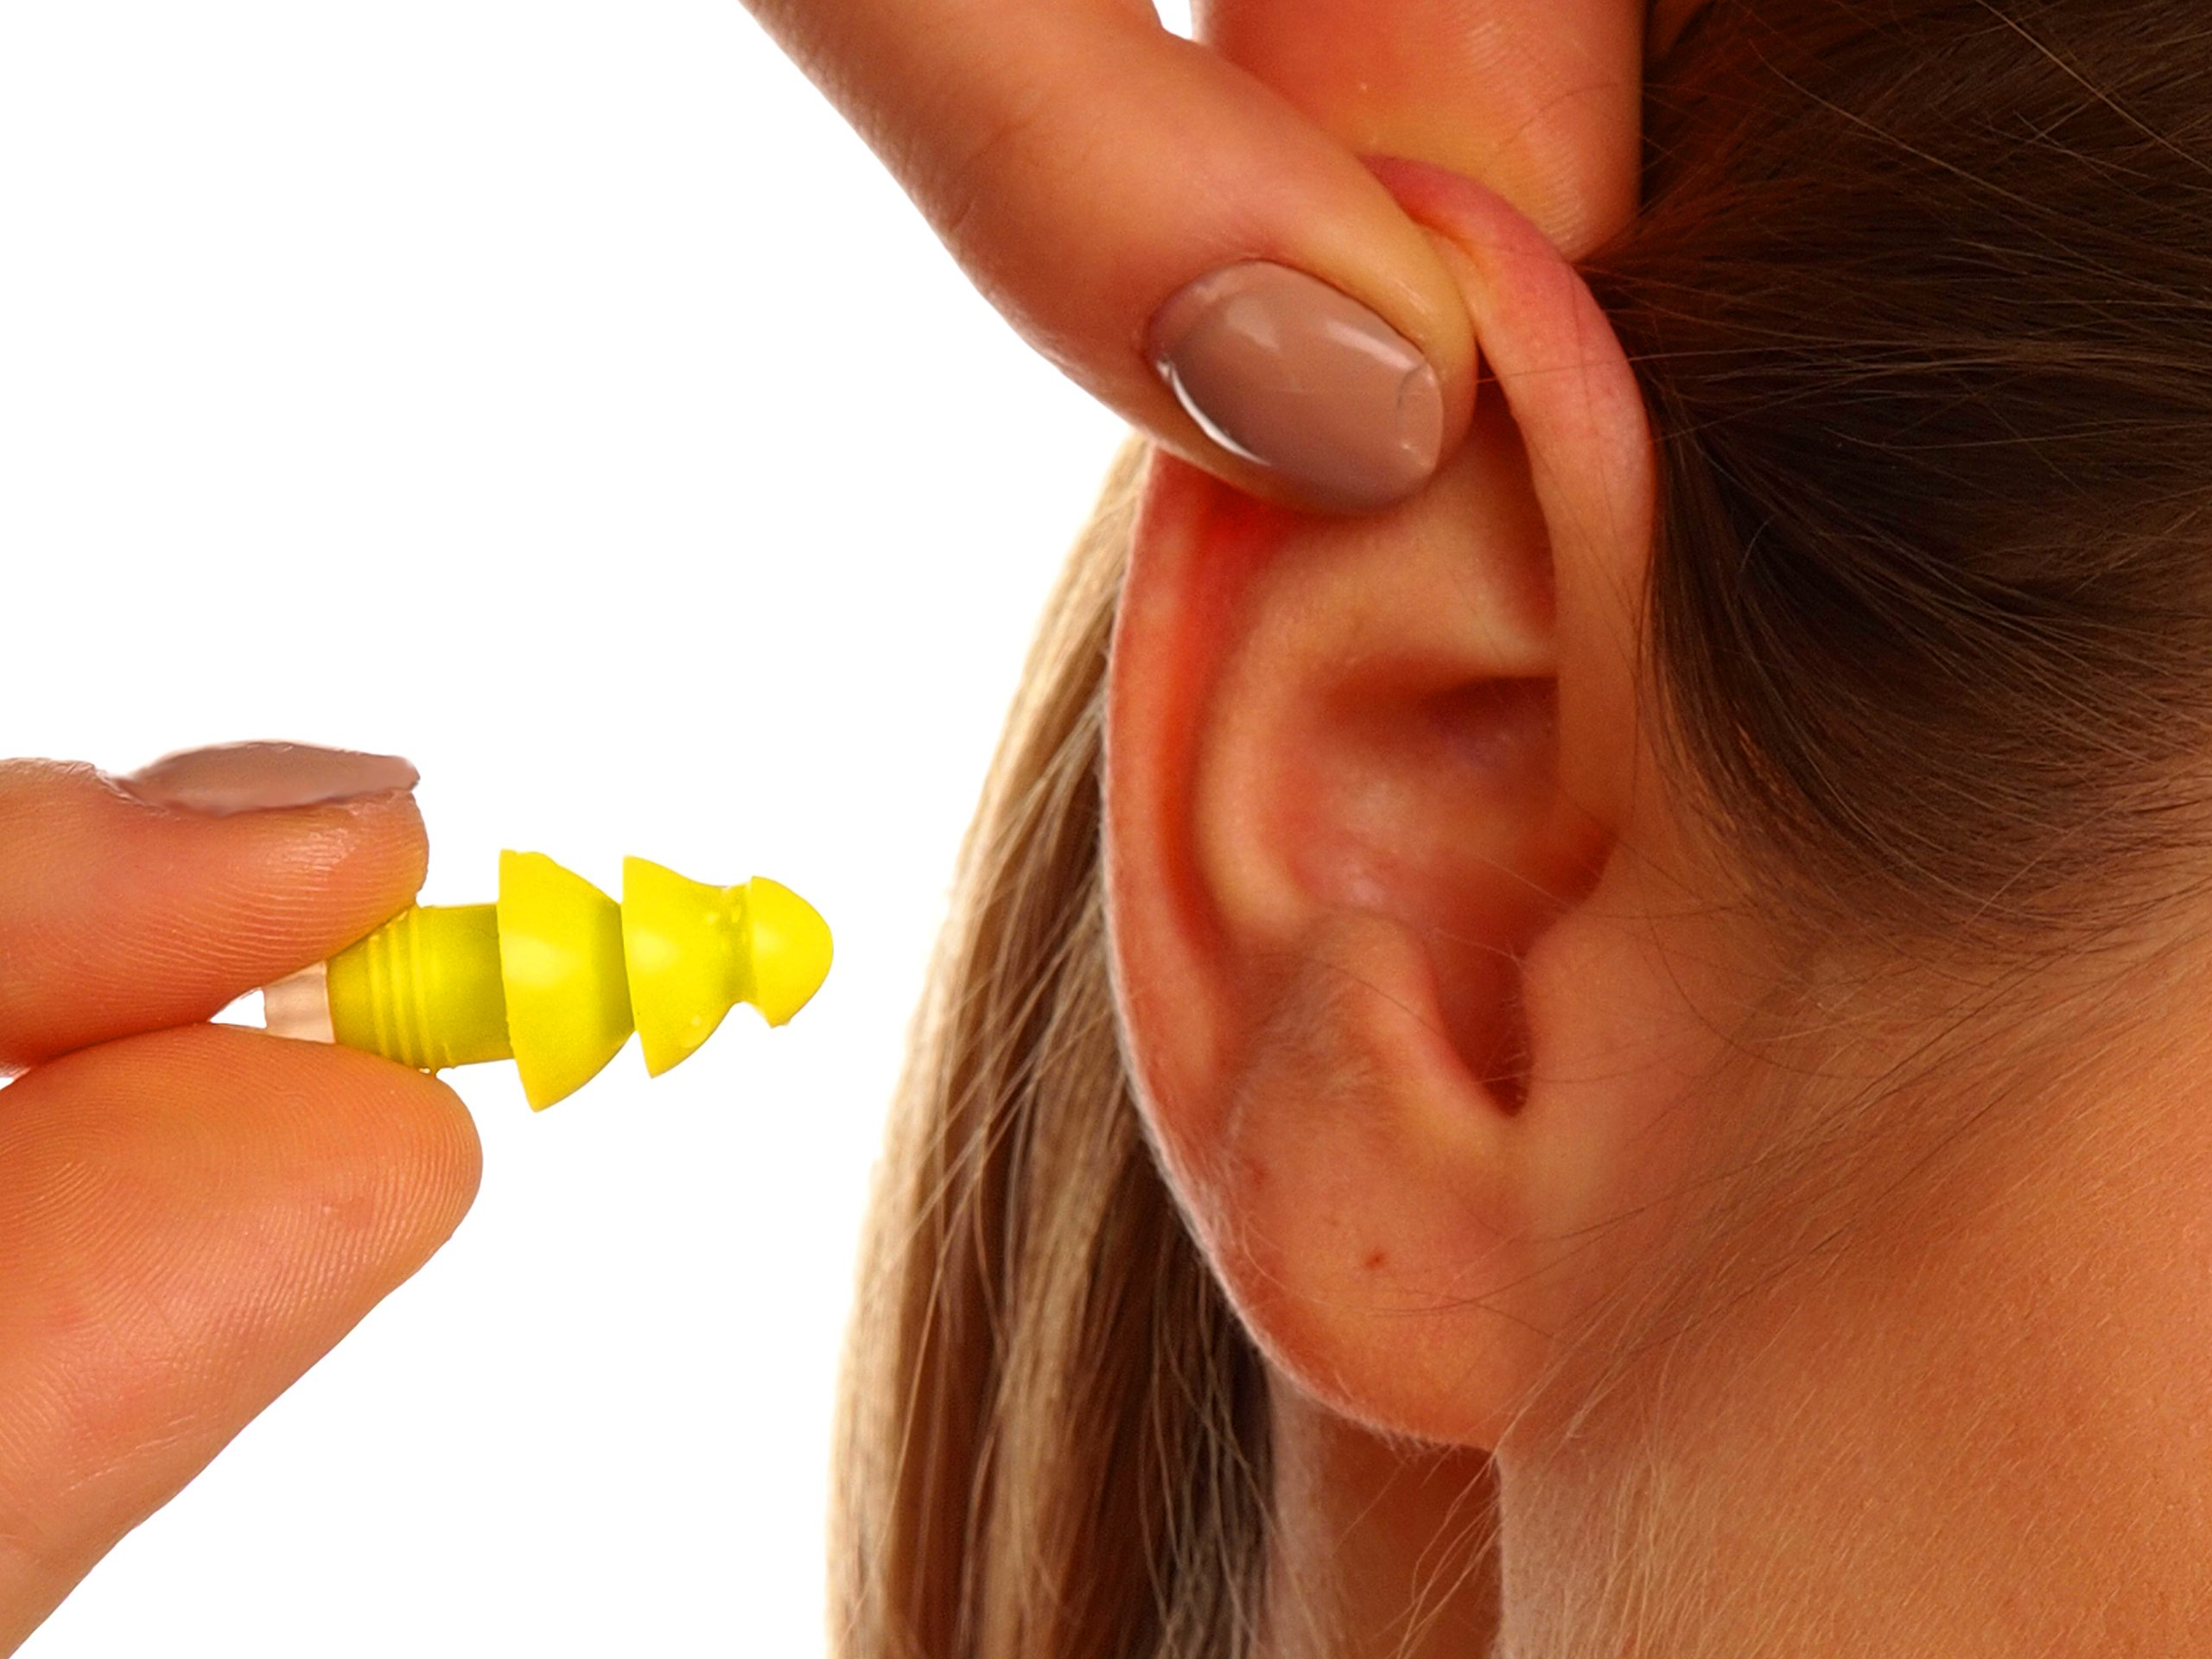 PQ Earplugs for Sleep - Comfortable & Reusable Ear Plugs for Side Sleepers - Sound Blocking Level 32 dB - Noise Cancelling for Snoring & Reusable Ear Plugs for Swimming & Traveling by Peace&Quiet (Image #8)